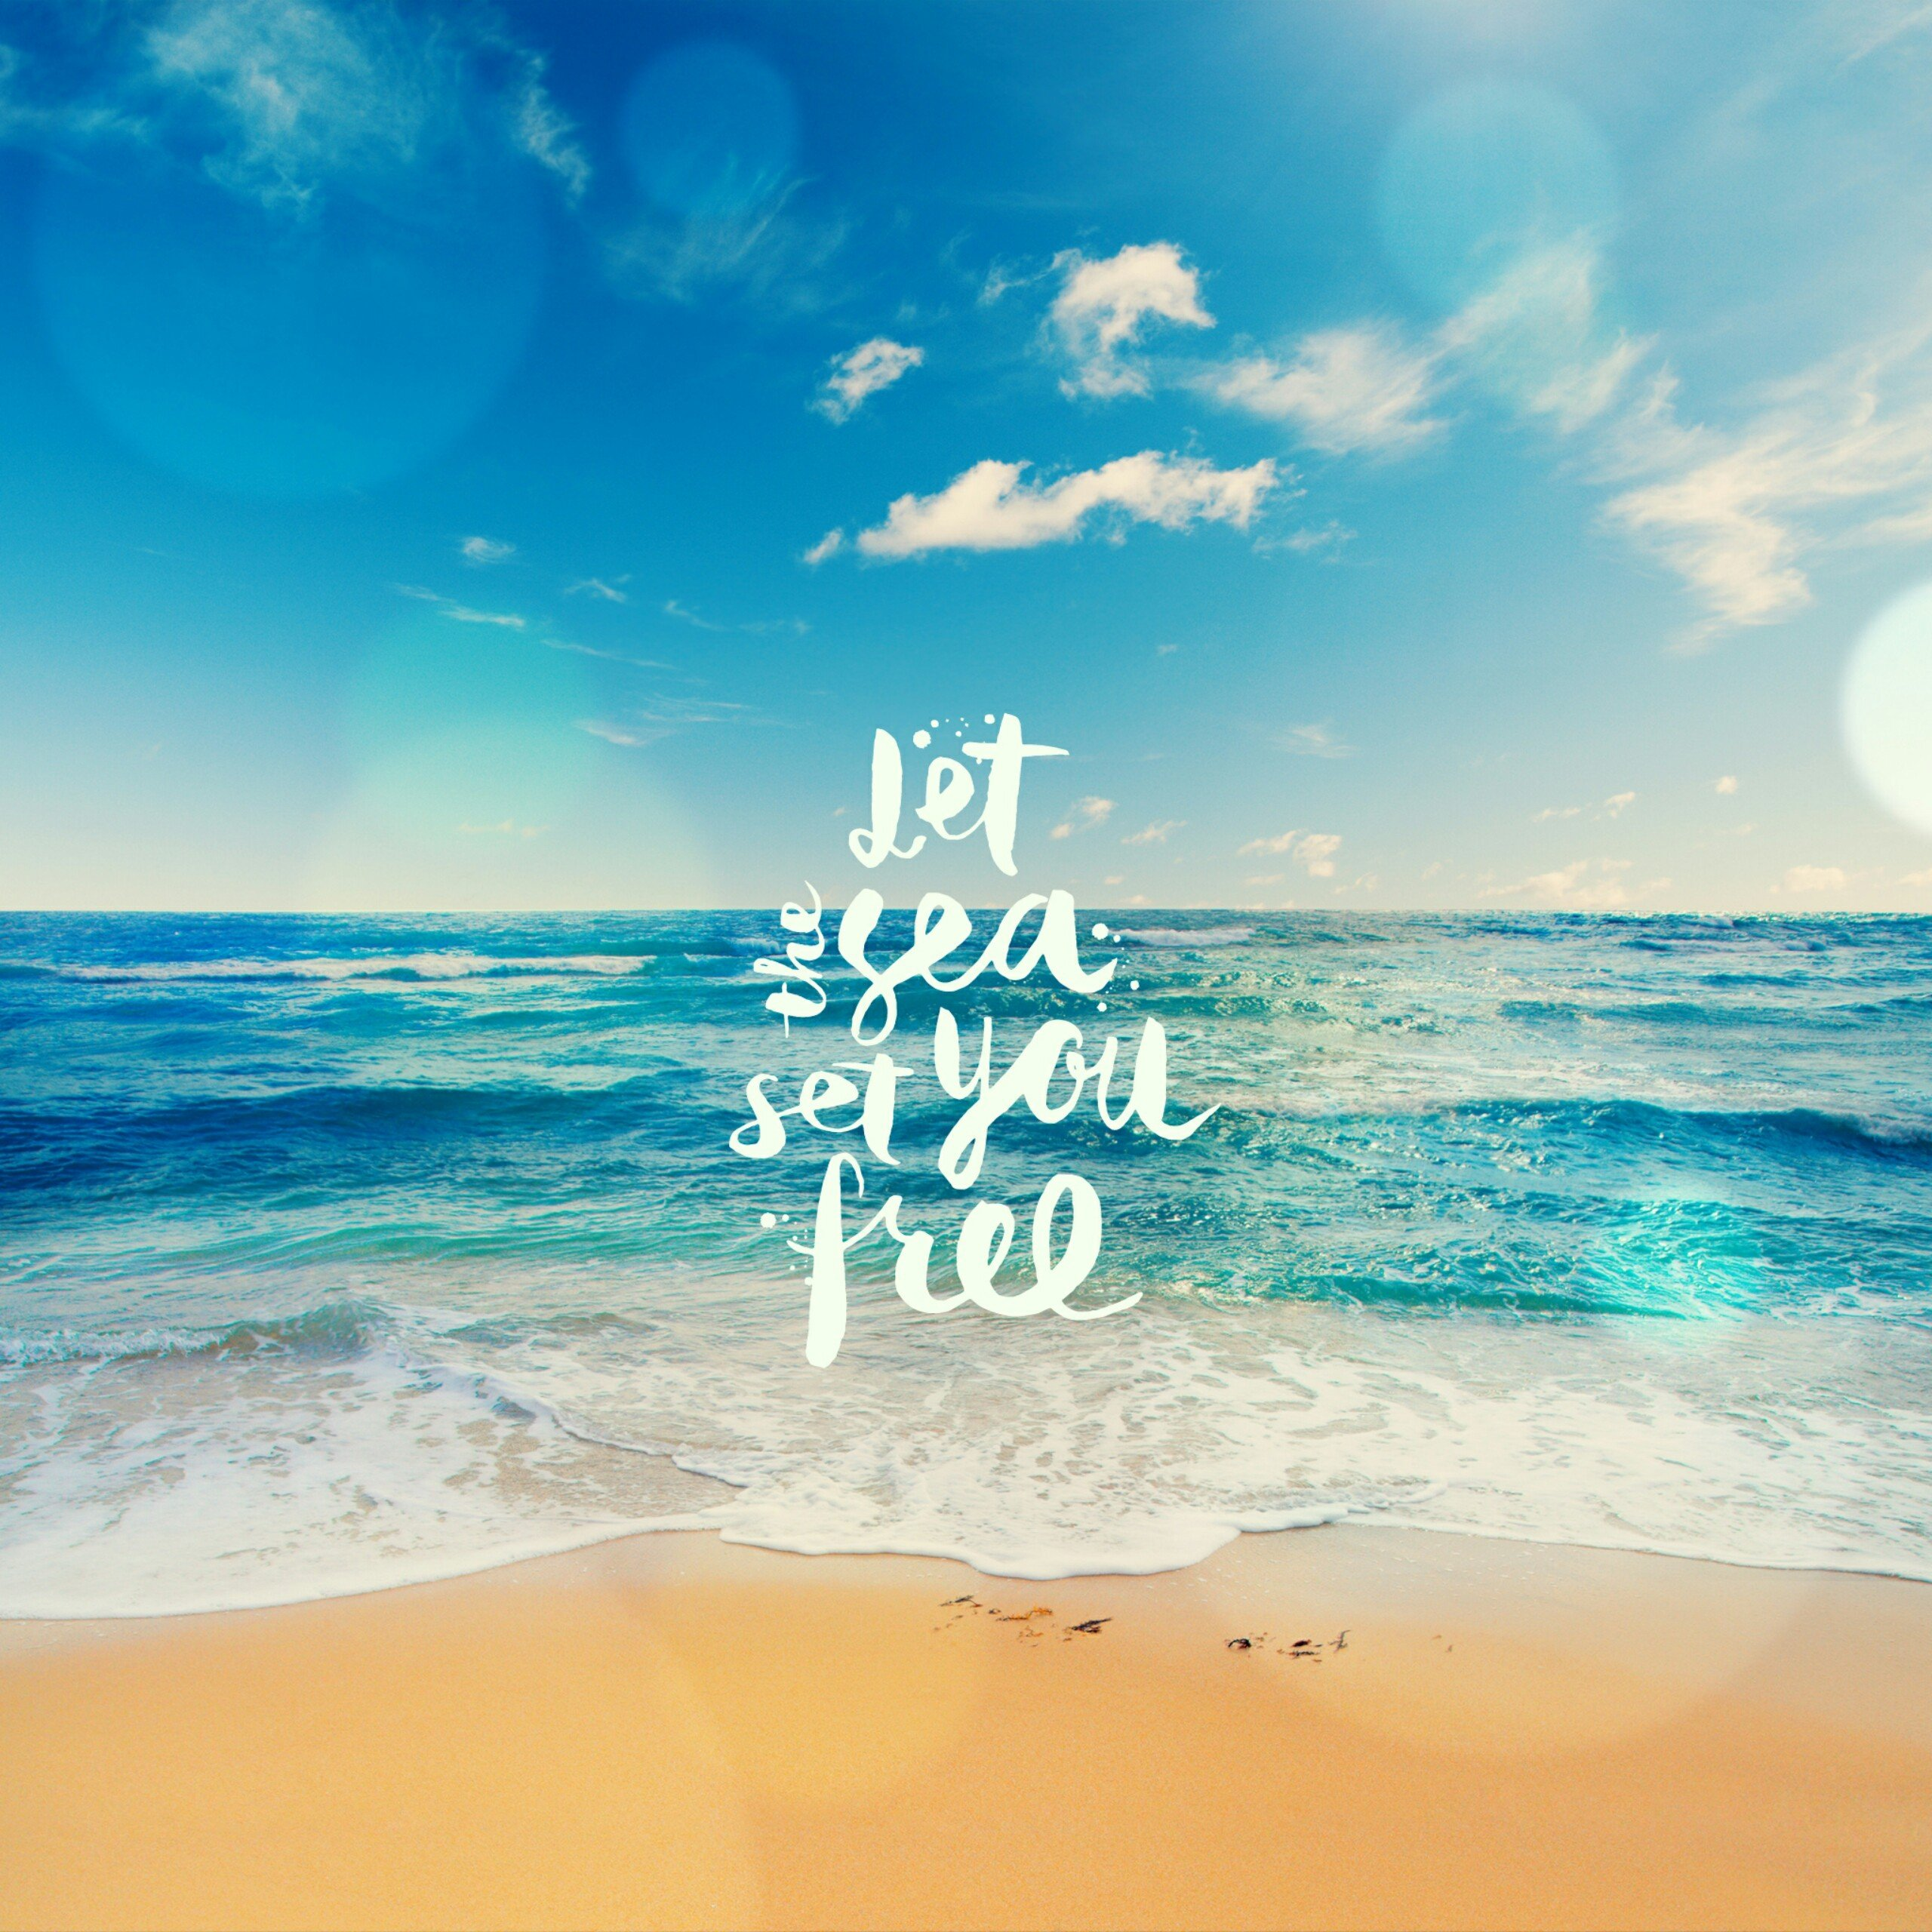 Summer Quotes Wallpapers - Wallpaper Cave